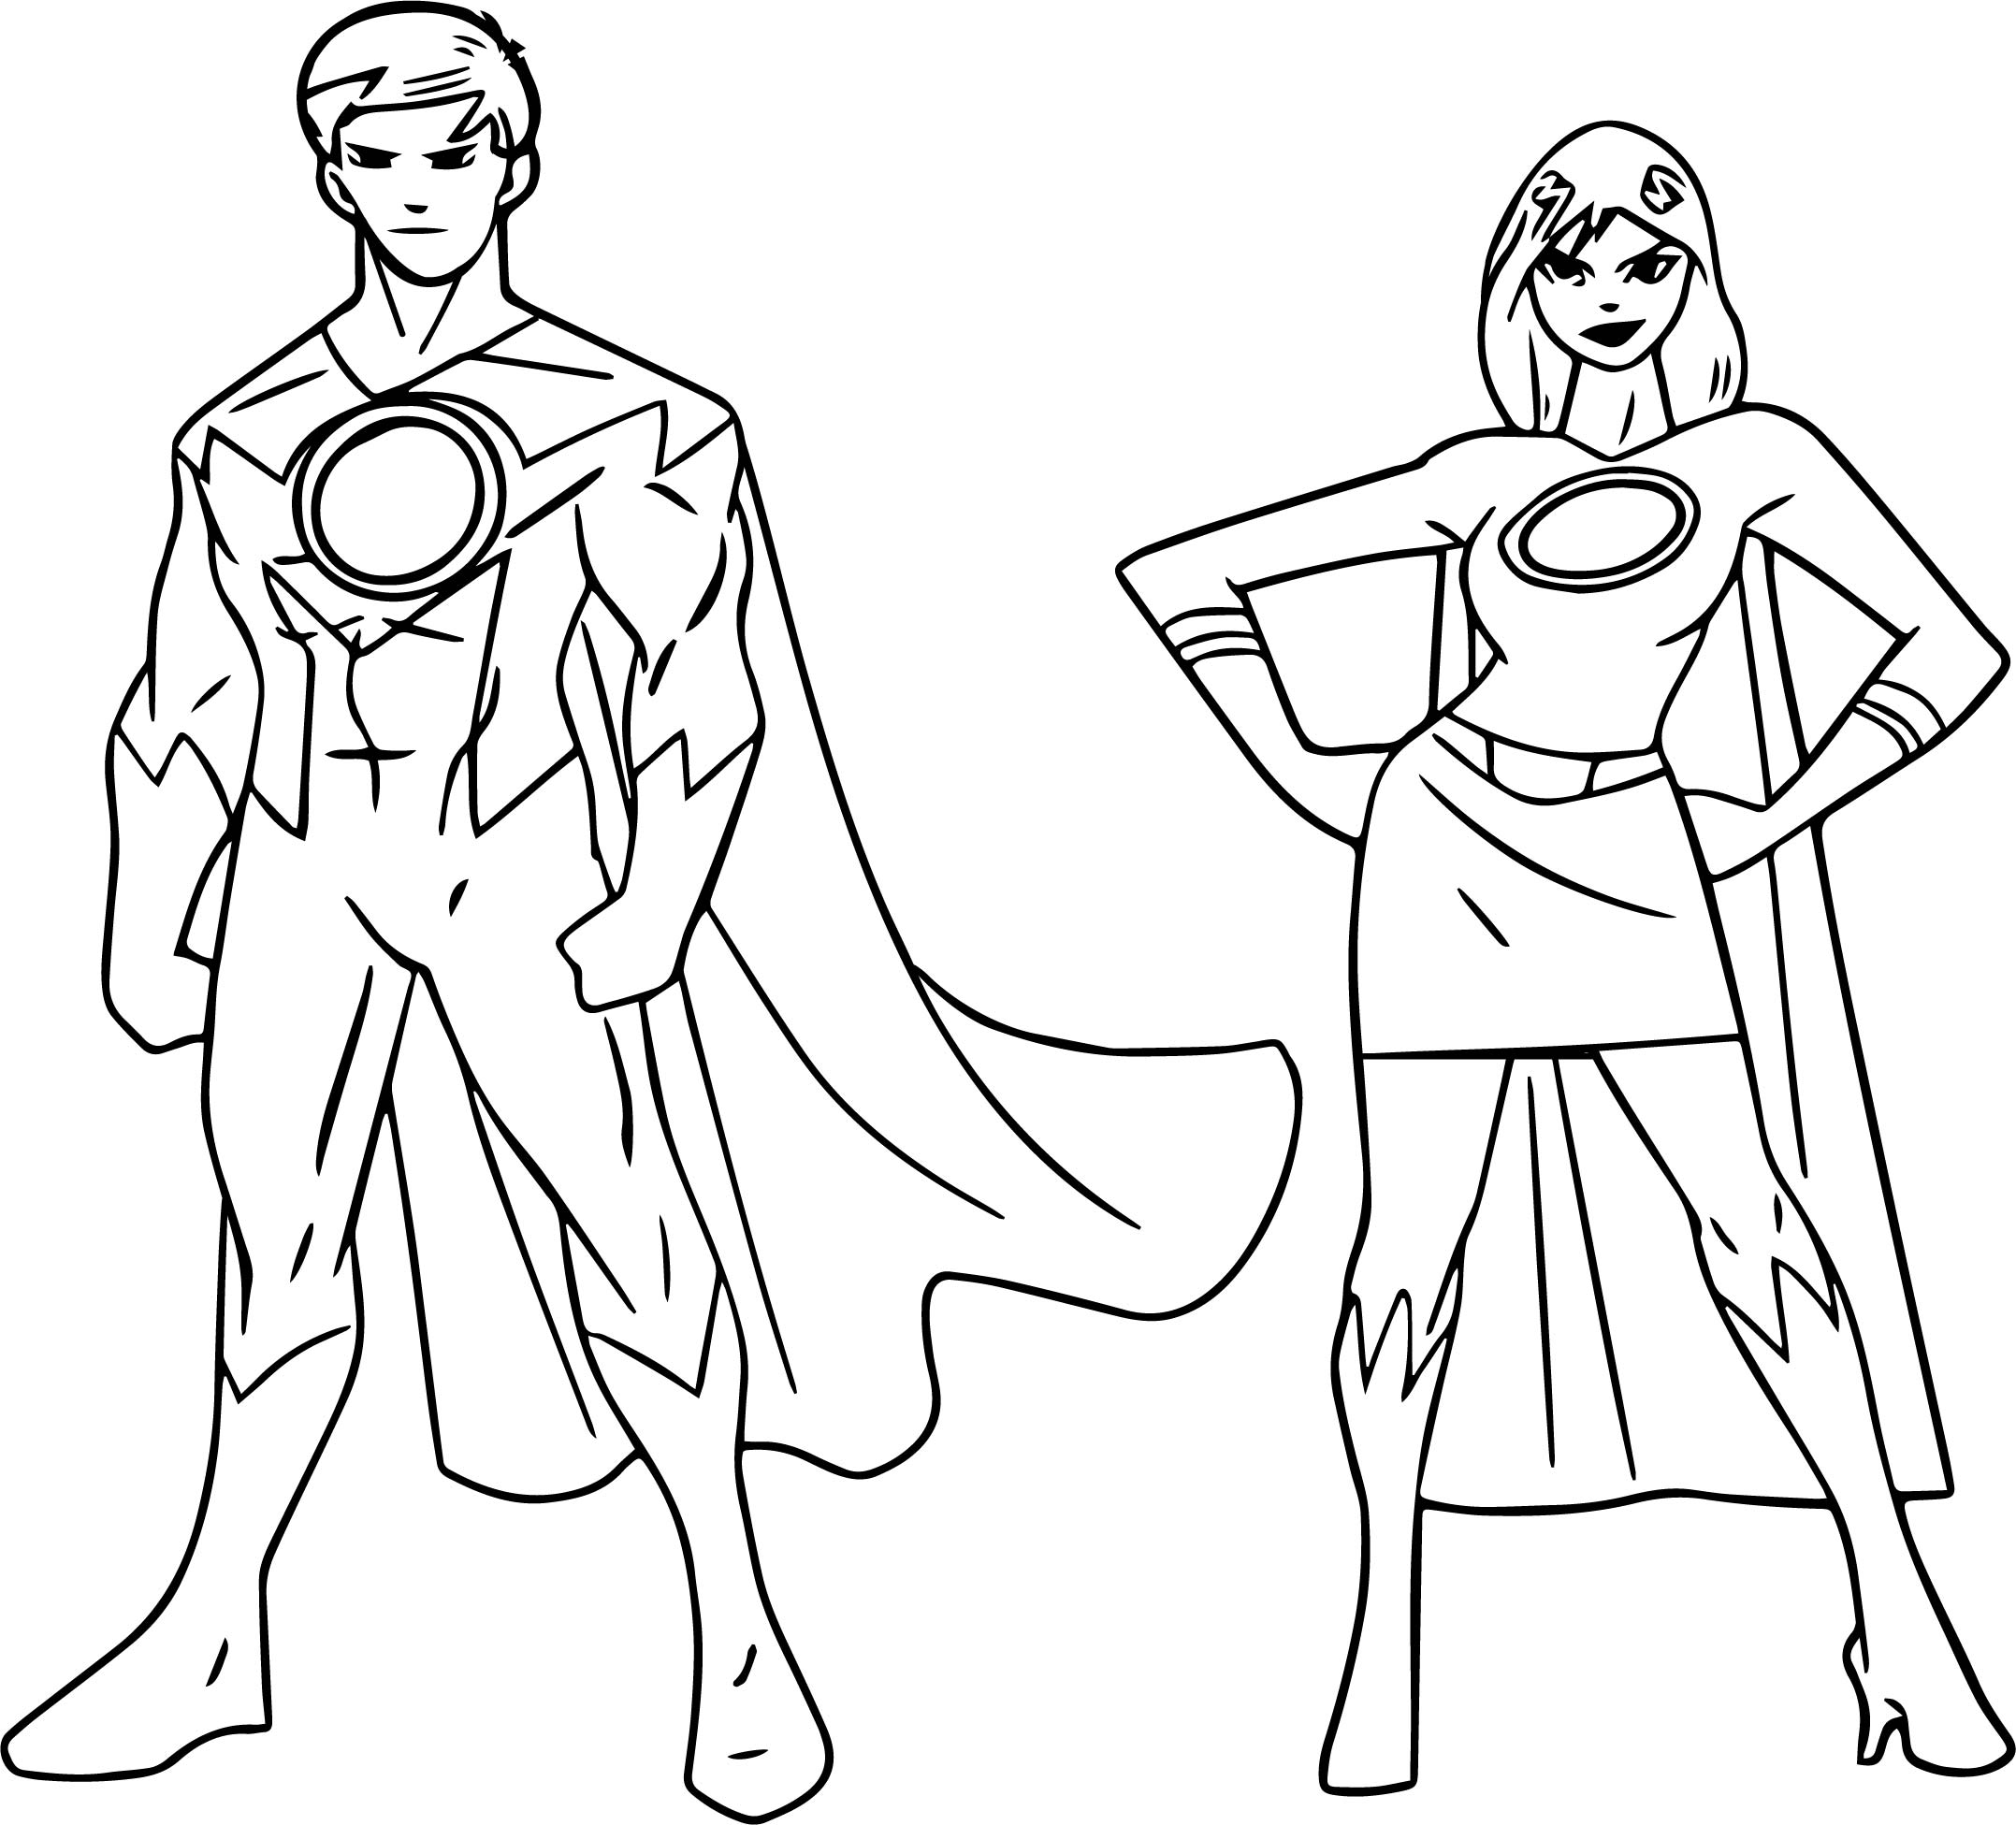 coloring pages superhero superheroes coloring pages download and print for free coloring pages superhero